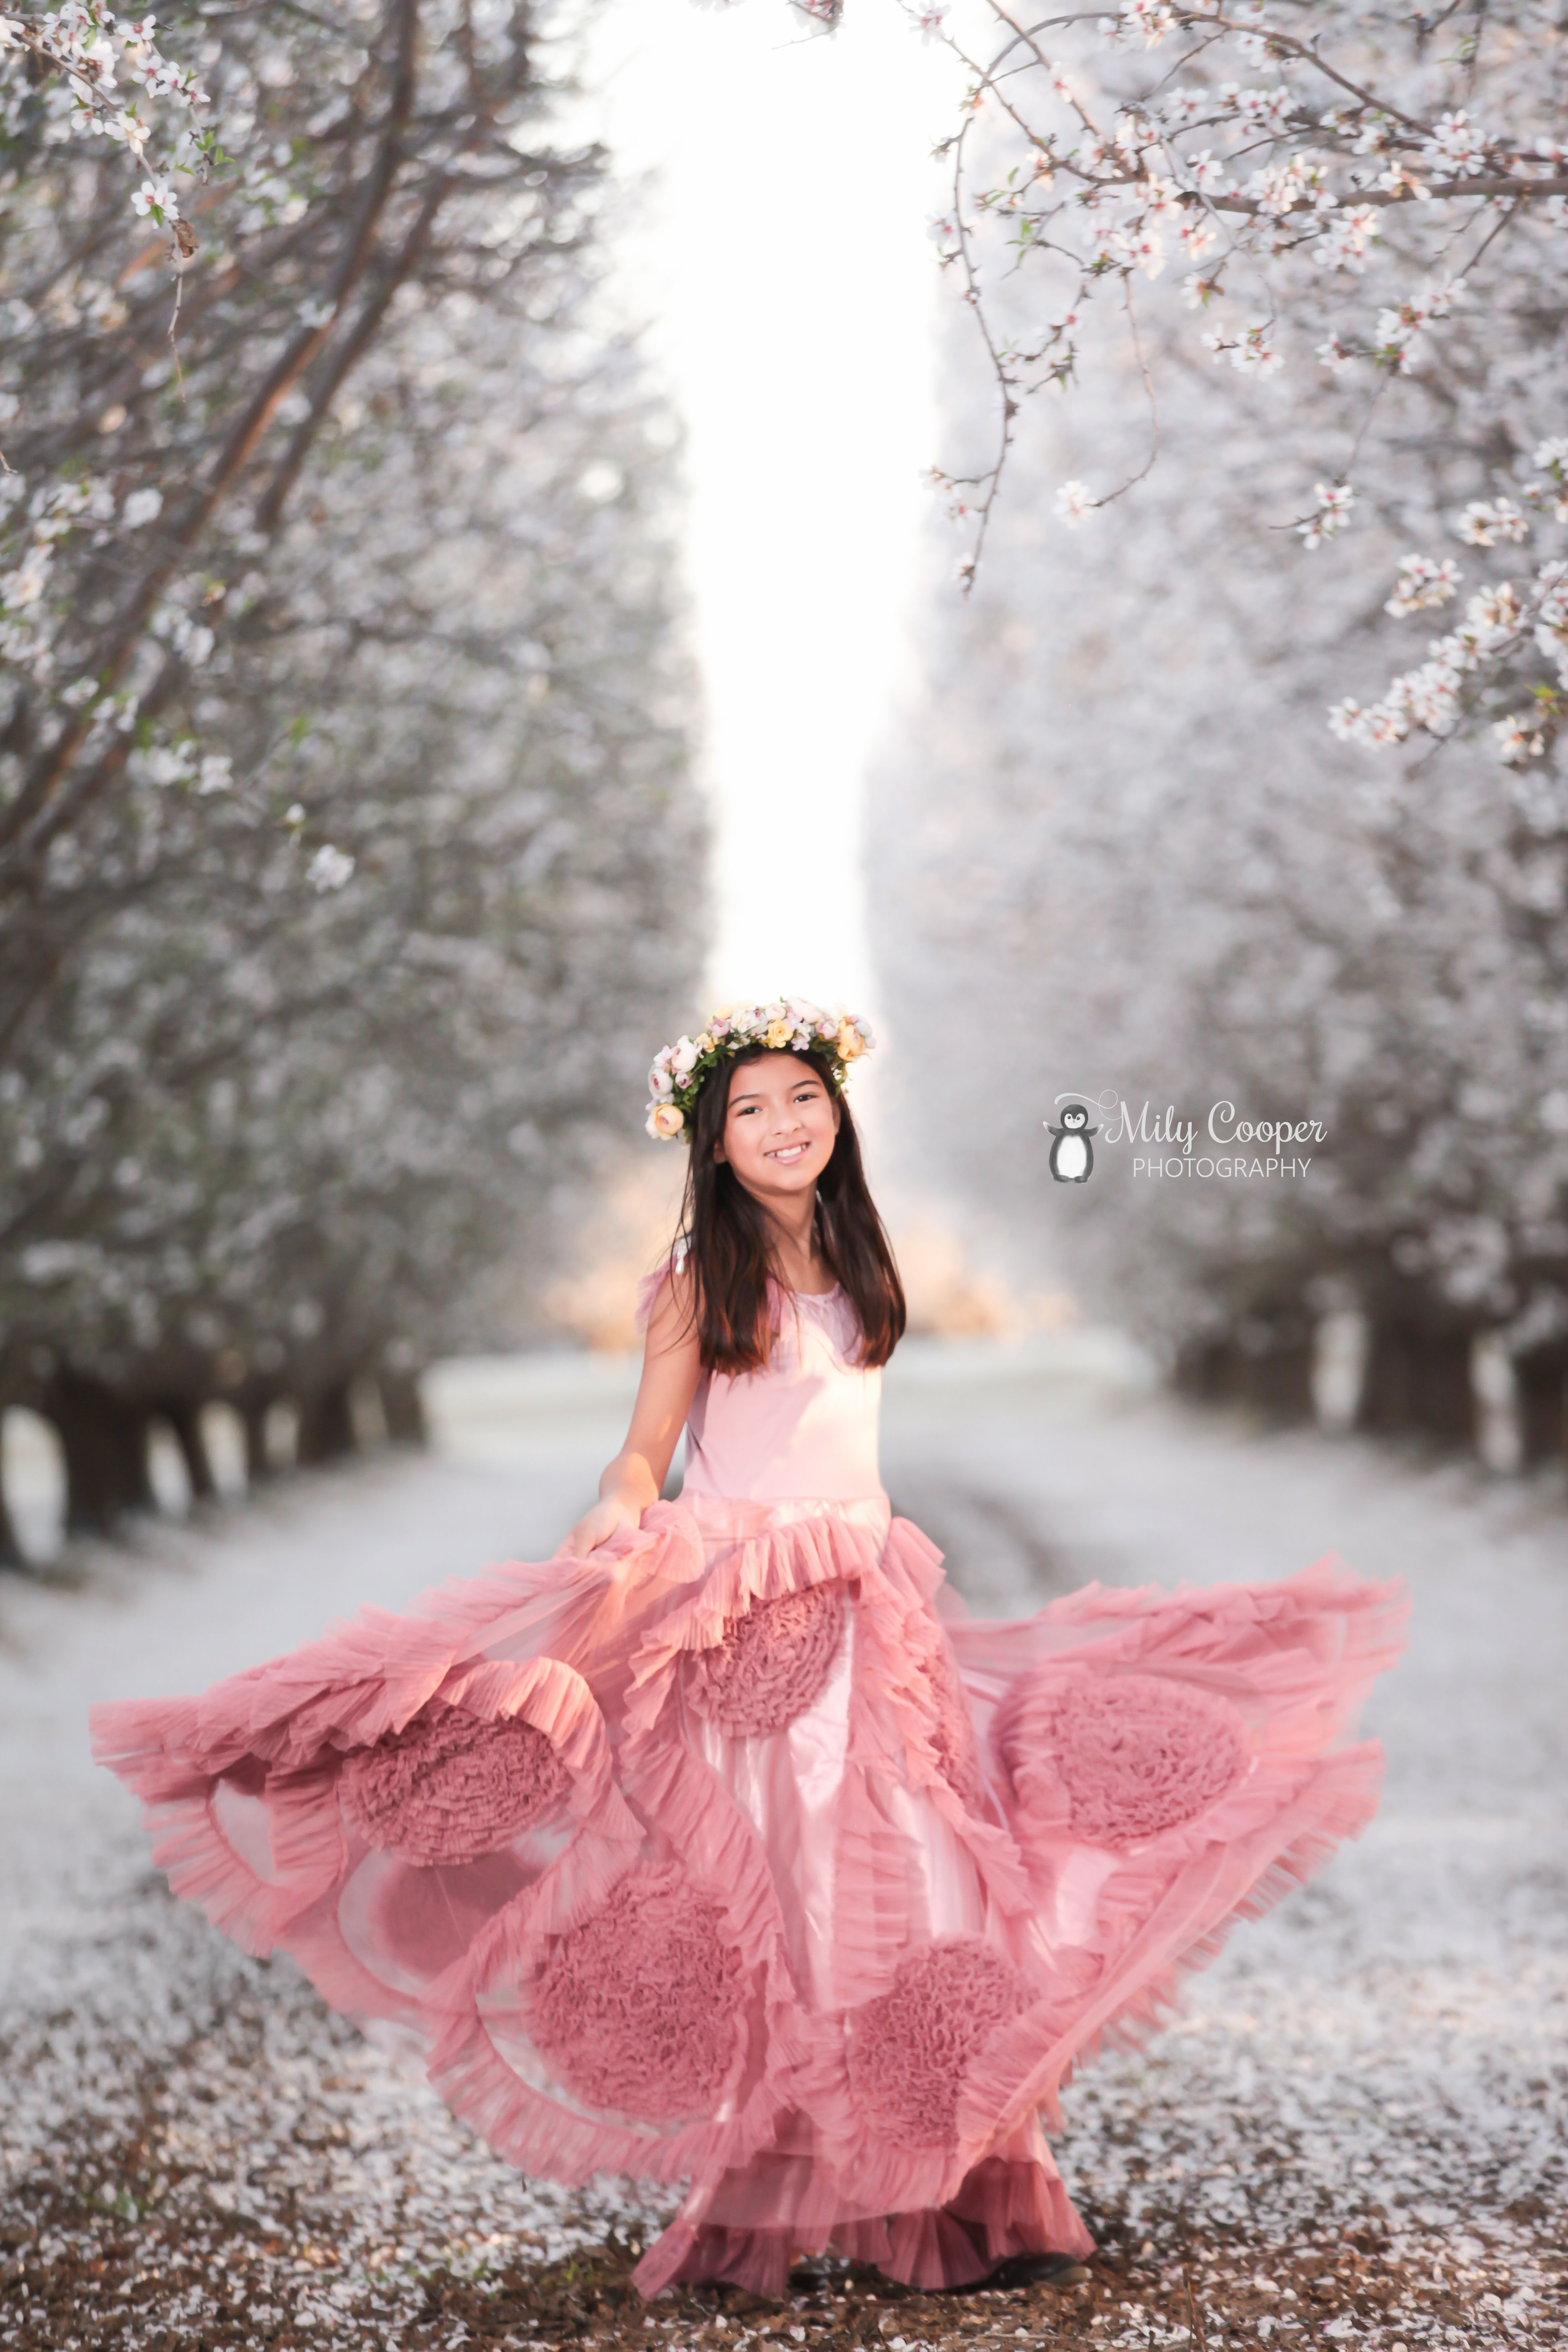 bb07d2a99b99 Pin by Mily Cooper on Mily Cooper Photography